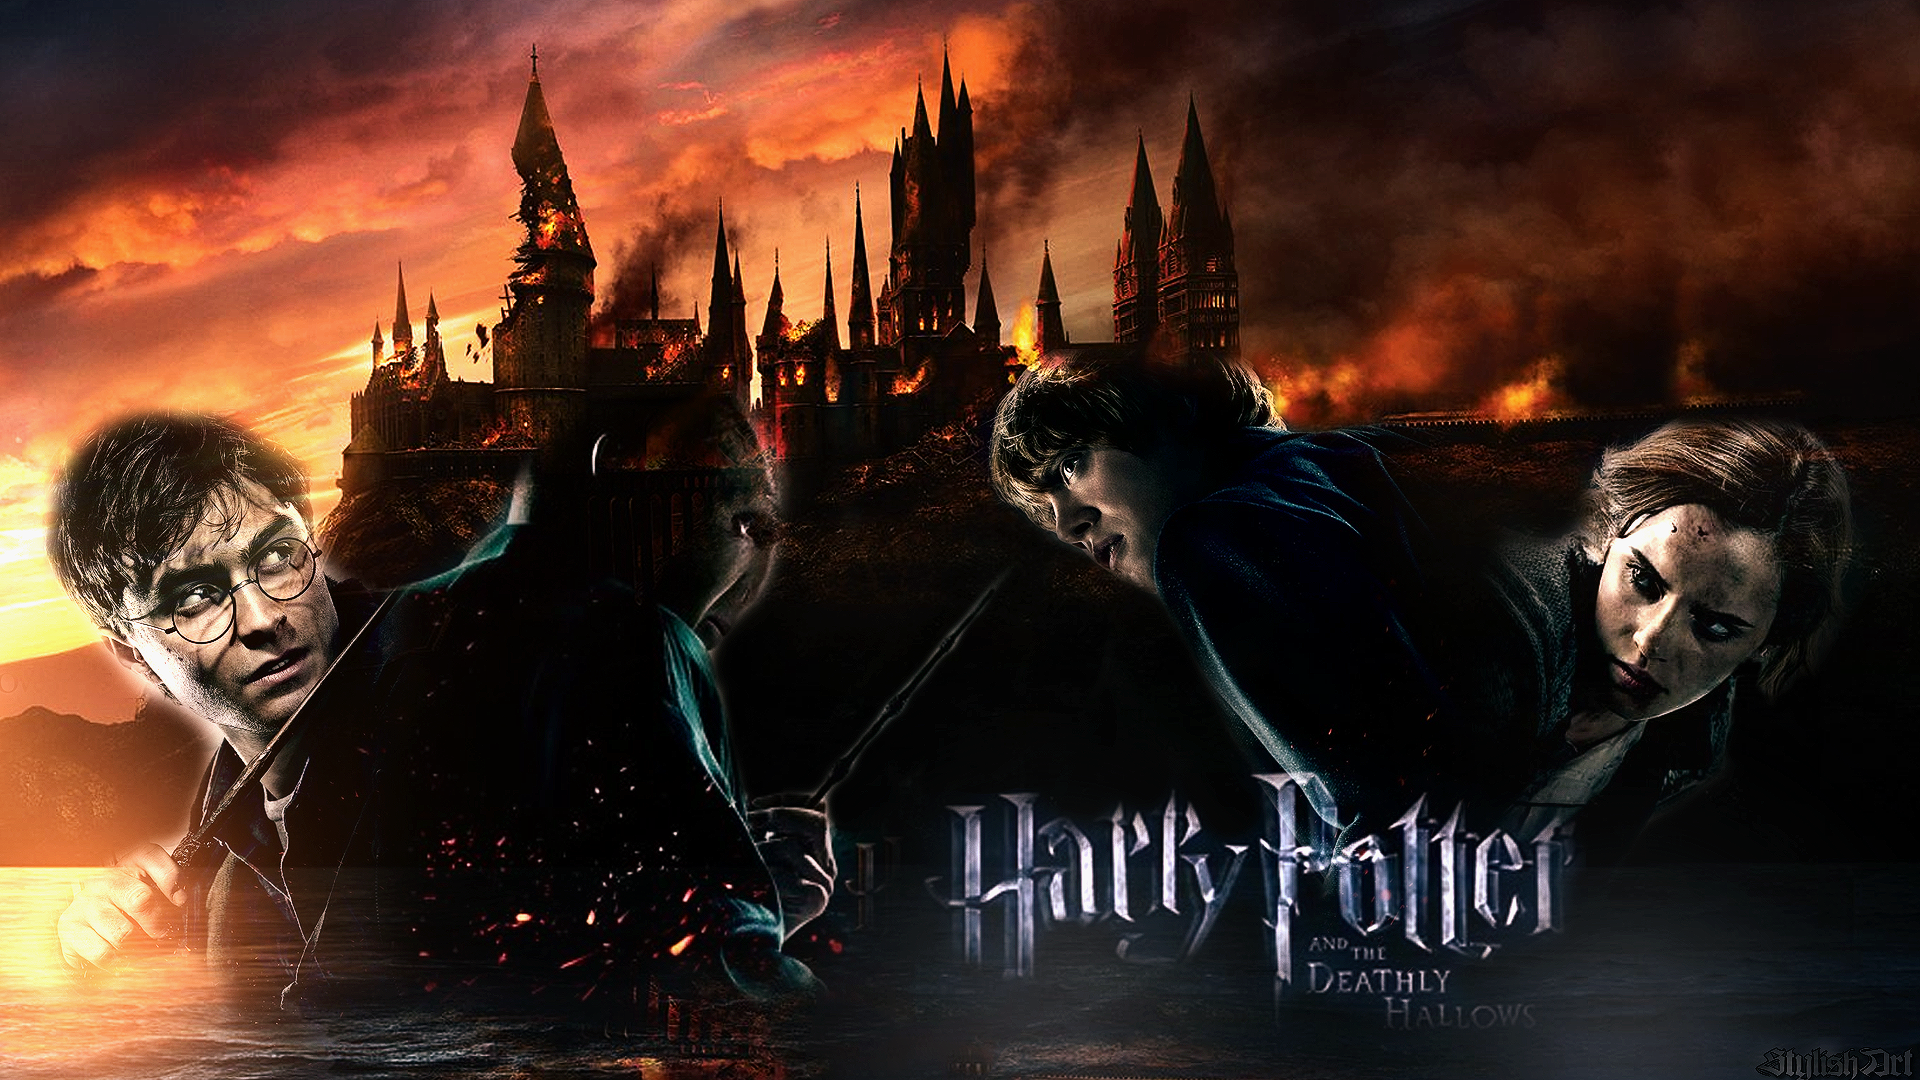 Hd wallpaper harry potter - Harry Potter Art Stylishart94